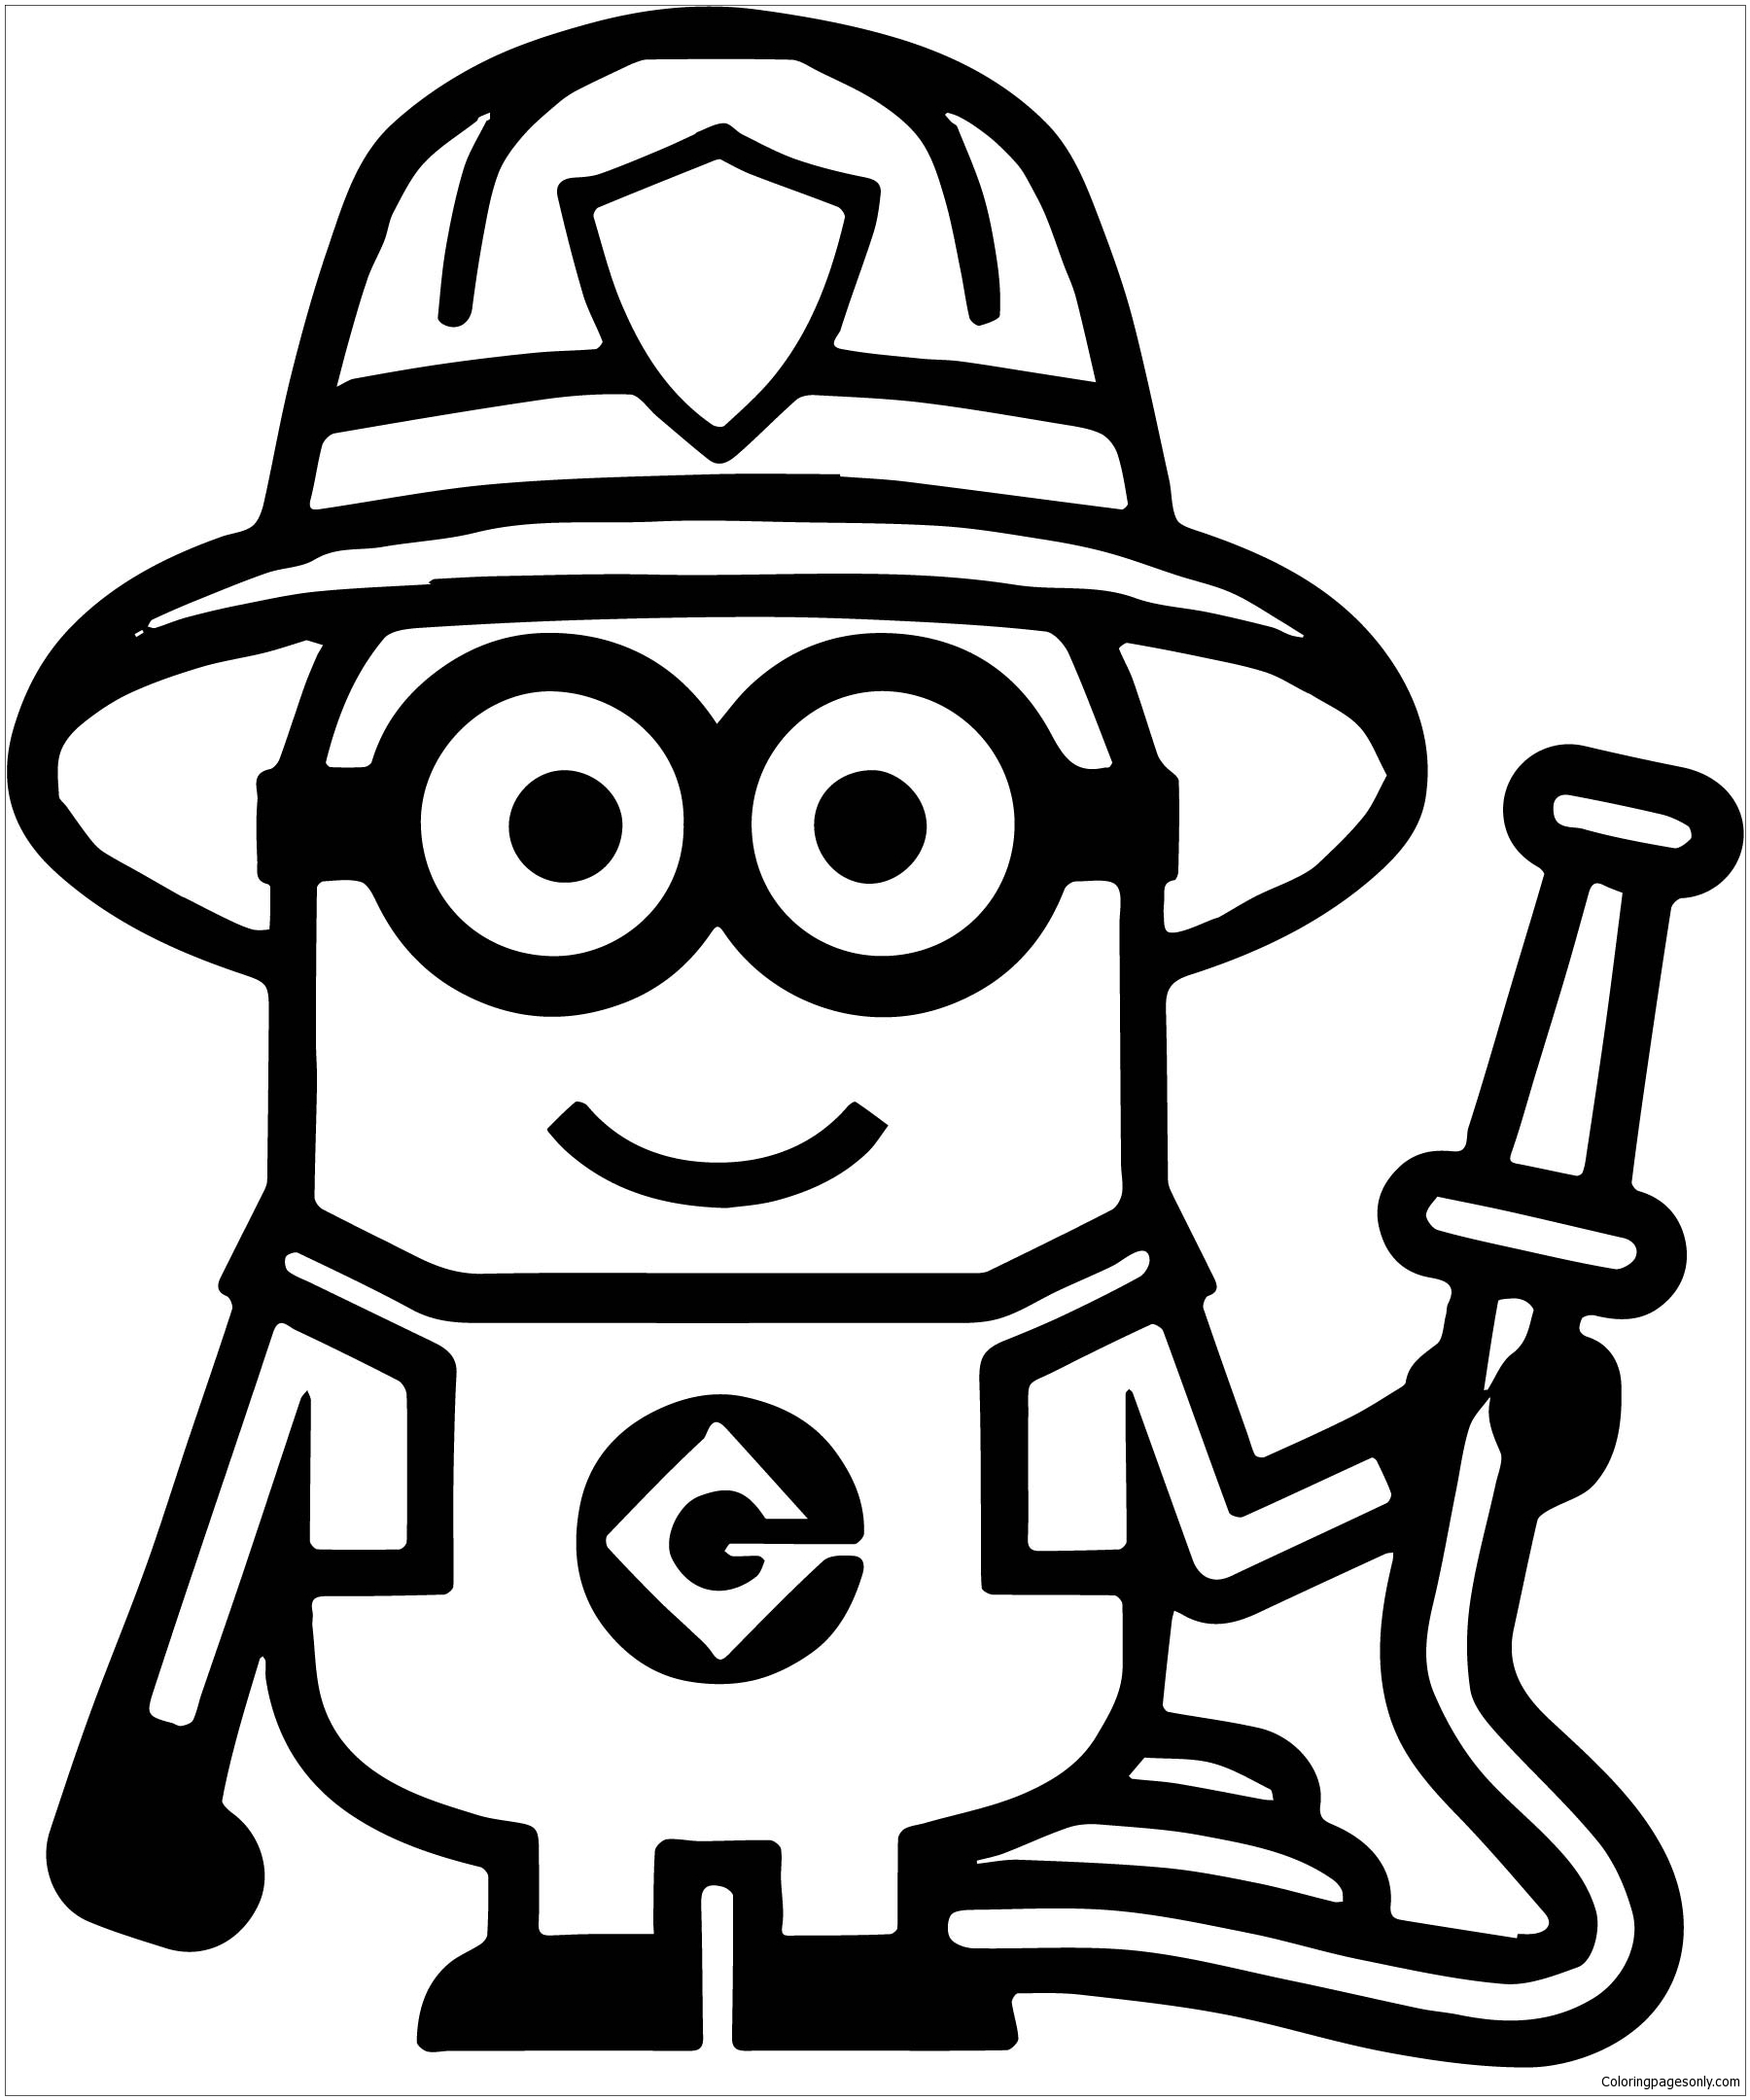 Stuart Minion Coloring Page - Free Coloring Pages Online